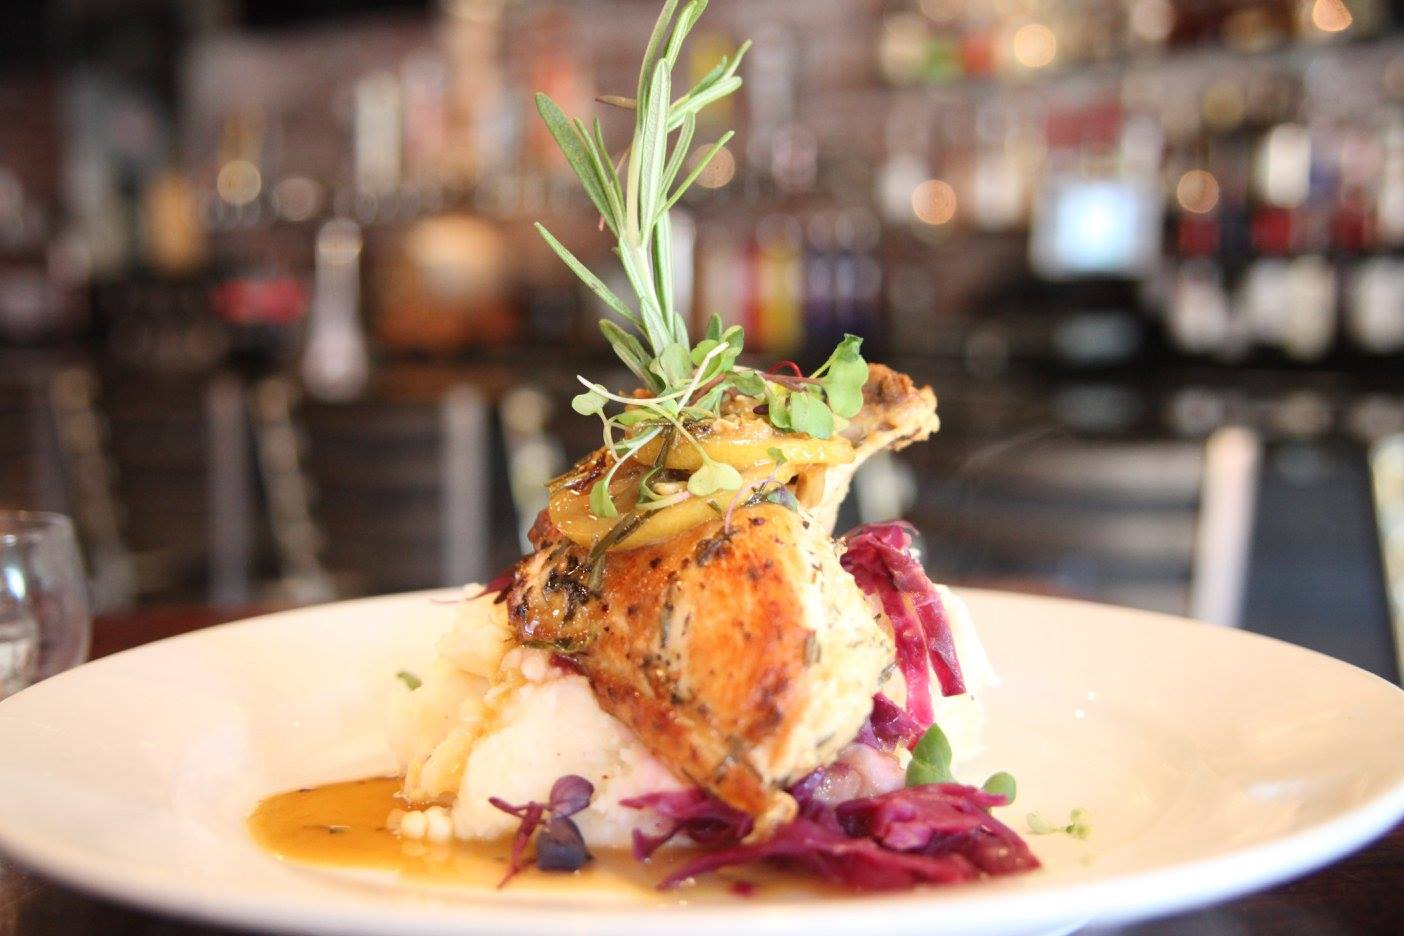 Roasted chicken over mashed potates and red onions with rosemary